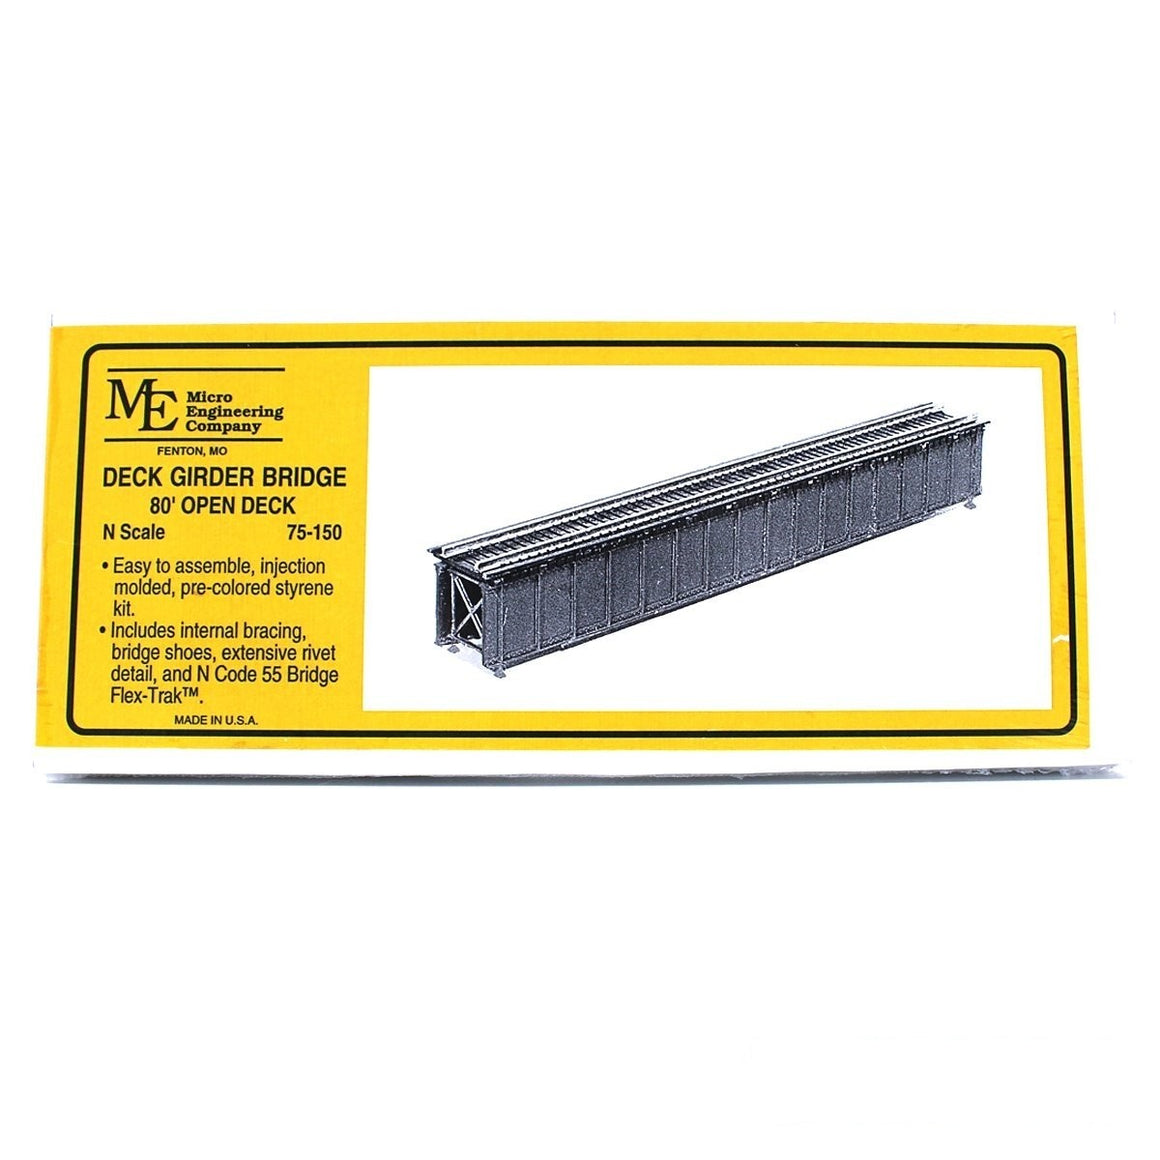 N Scale: Open Deck Girder Bridge - 80-Foot